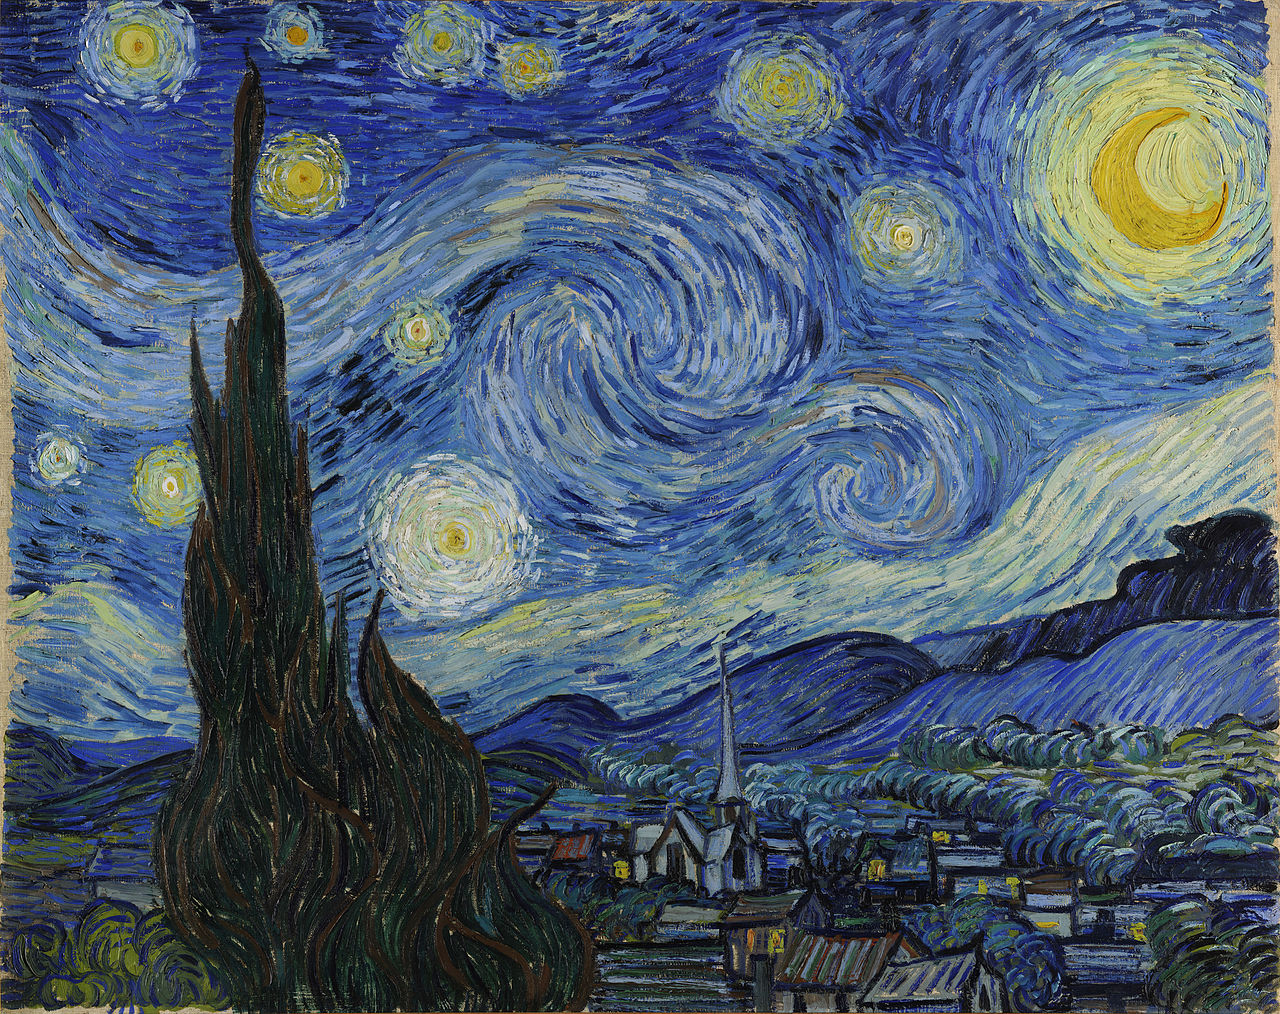 Painted from memory, Van Gogh's Starry Night is famous for advancing the art of painting beyond the representation of the physical world.